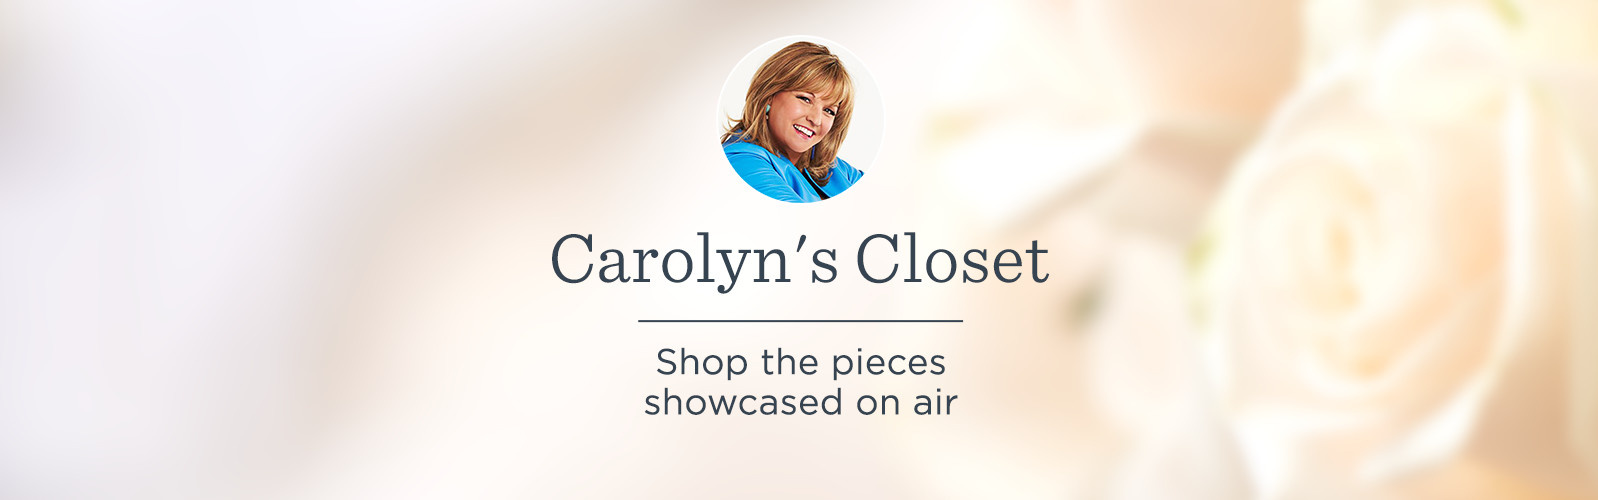 Carolyn's Closet. Shop the pieces showcased on air